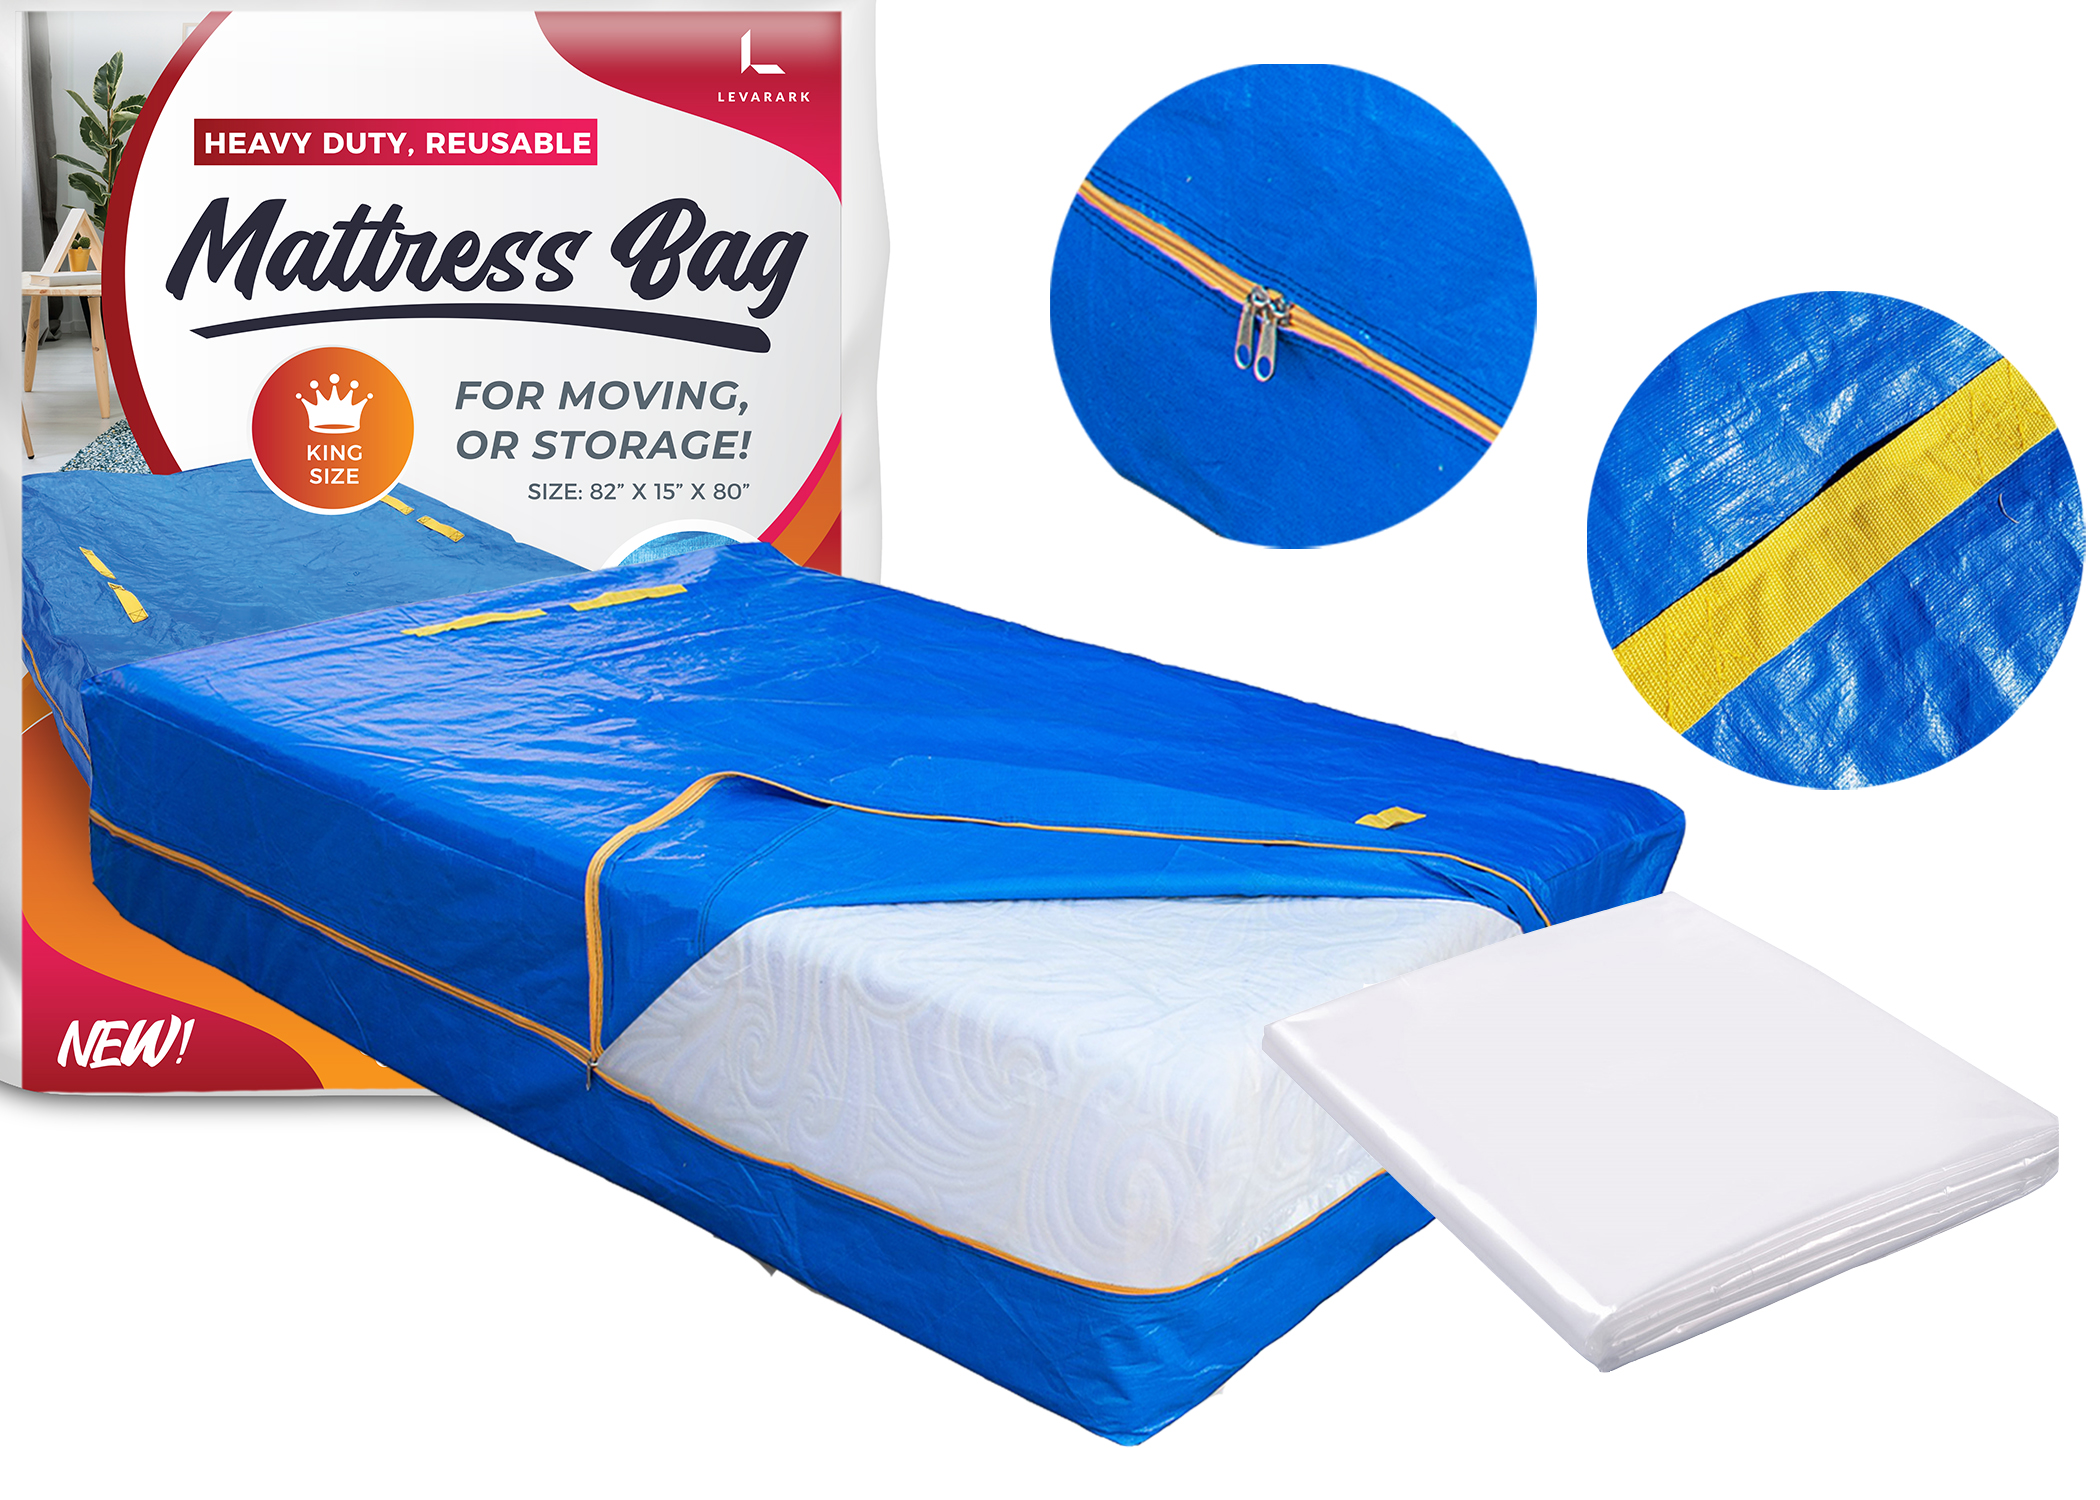 Levarark Mattress Bag For Moving And StorageCal King Double CoverHeavy Dut